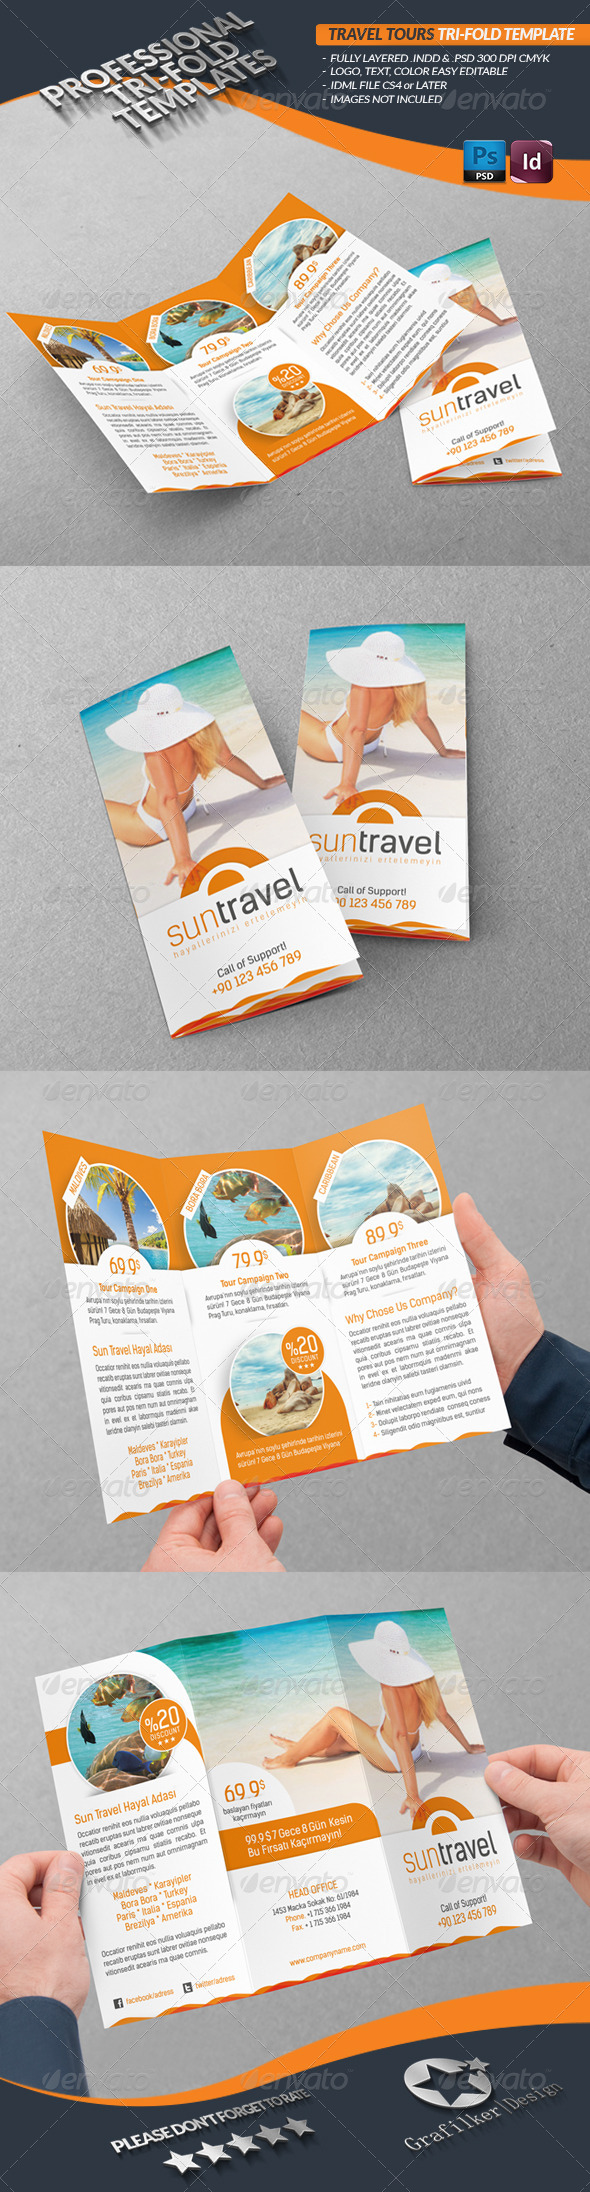 Travel Tours Tri-Fold Template - Brochures Print Templates